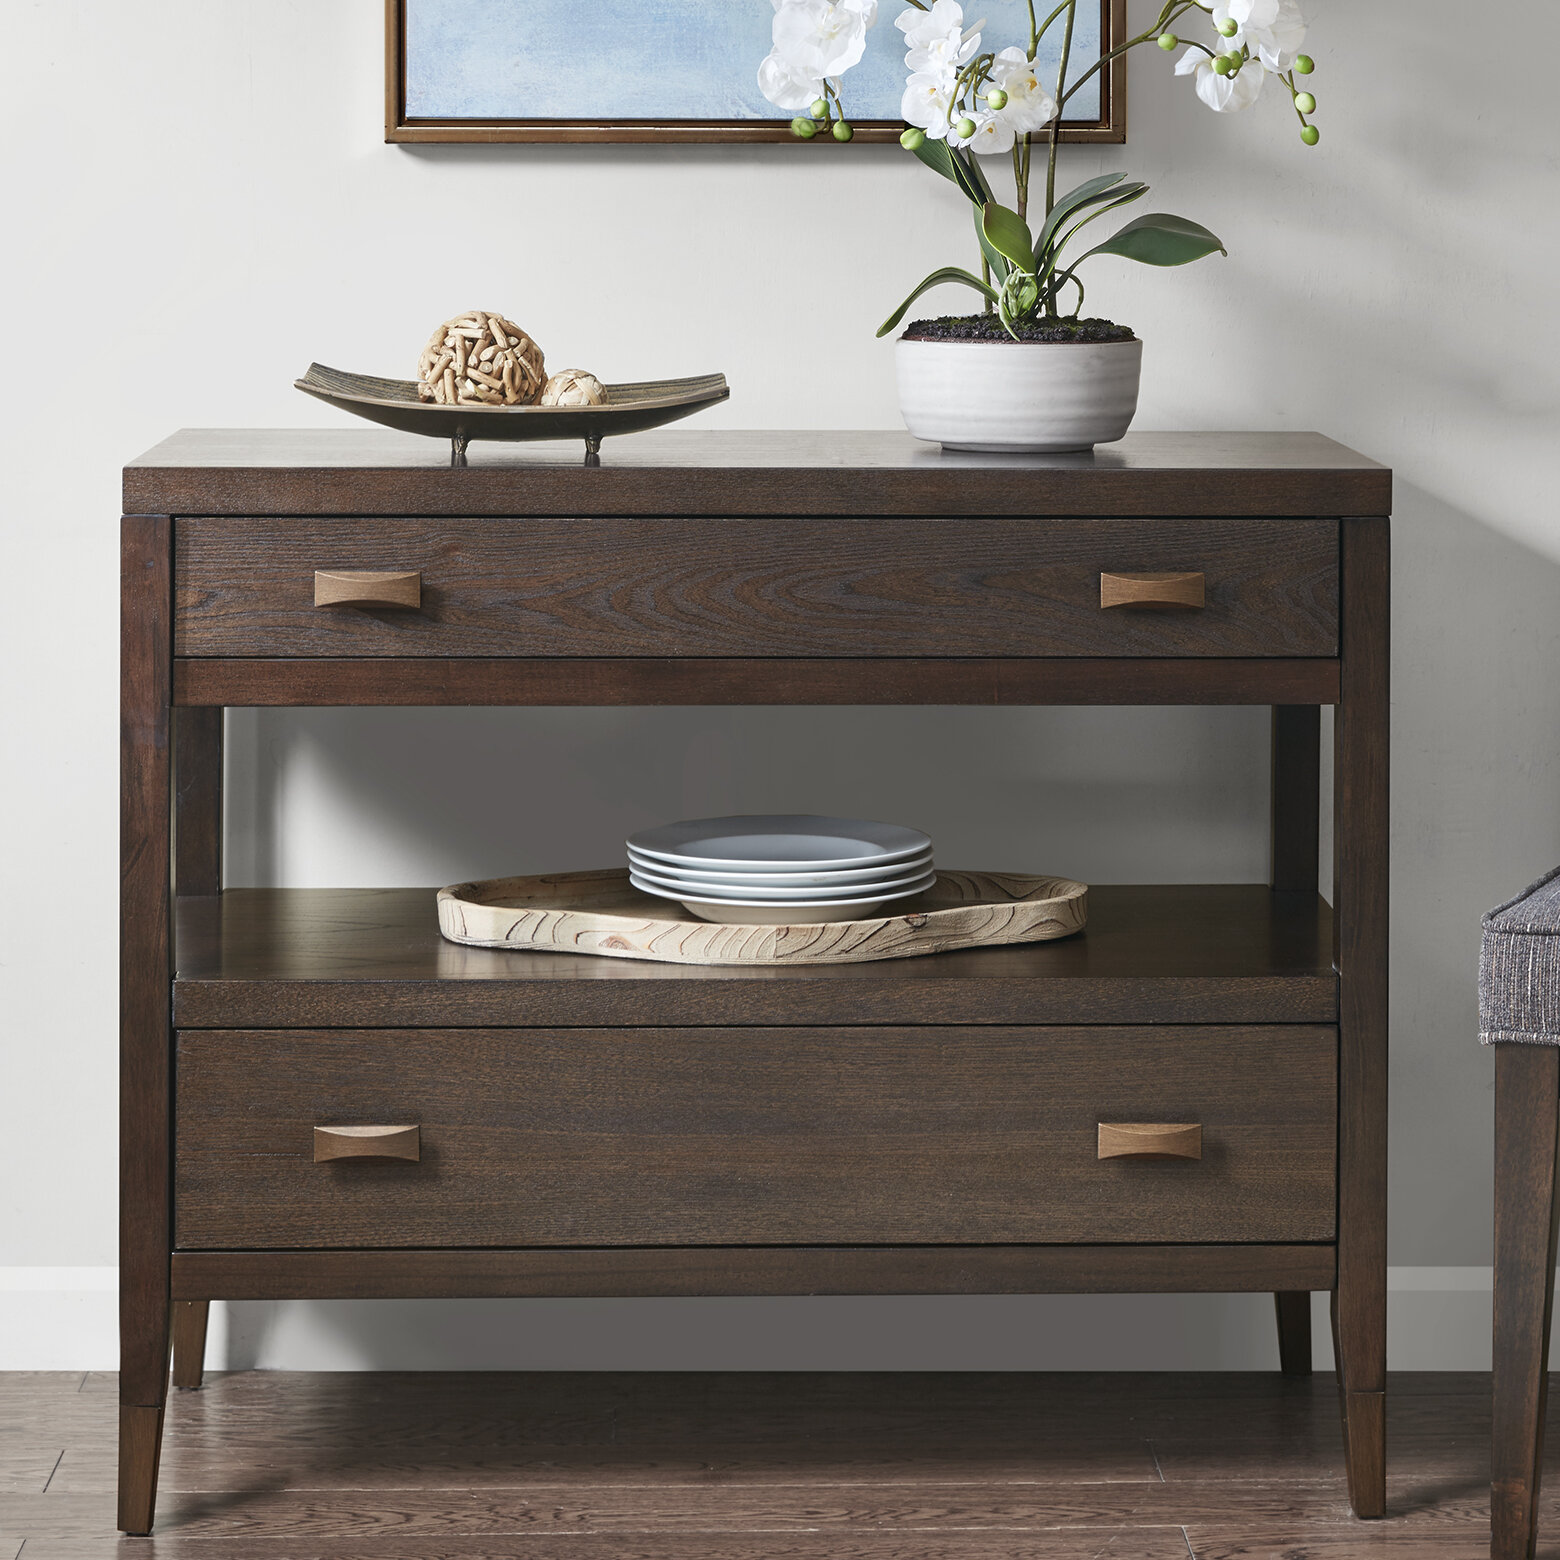 Exceptionnel Corrigan Studio Duren Buffet Table | Wayfair